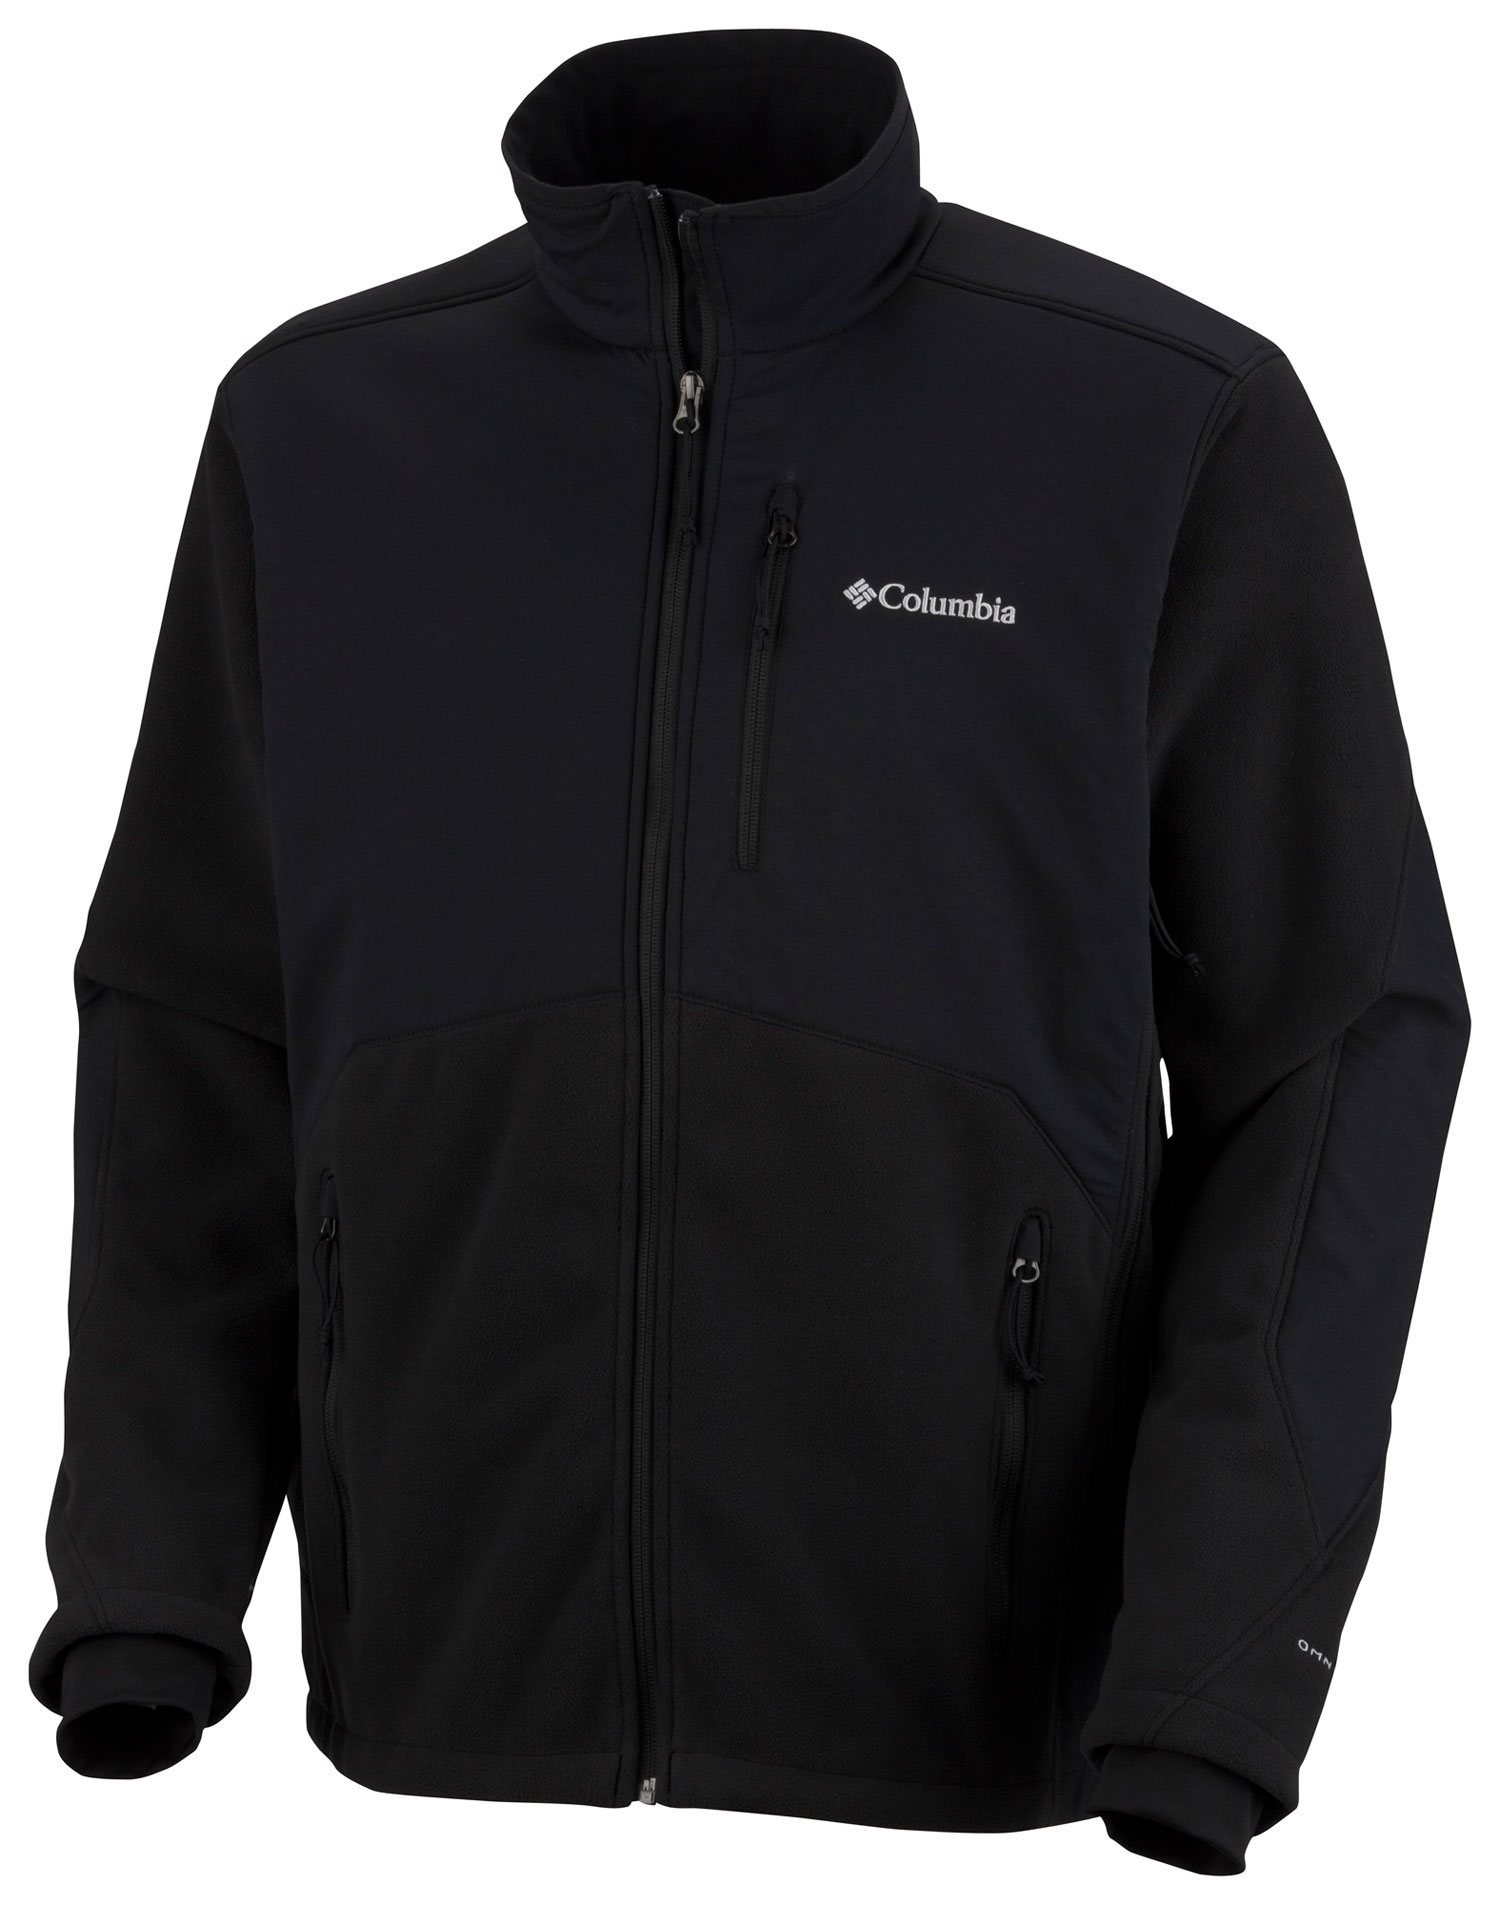 Key Features of the Columbia Ballistic Fleece Jacket: Fabric: Shell: 100% polyester, 94% nylon/6% elastane. Lining: 92% polyester/8% elastane stretch jersey 3-point Interchange system Windproof bonded fleece Vented Inner comfort cuff Zip-closed pockets Drawcord adjustable hem - $99.95